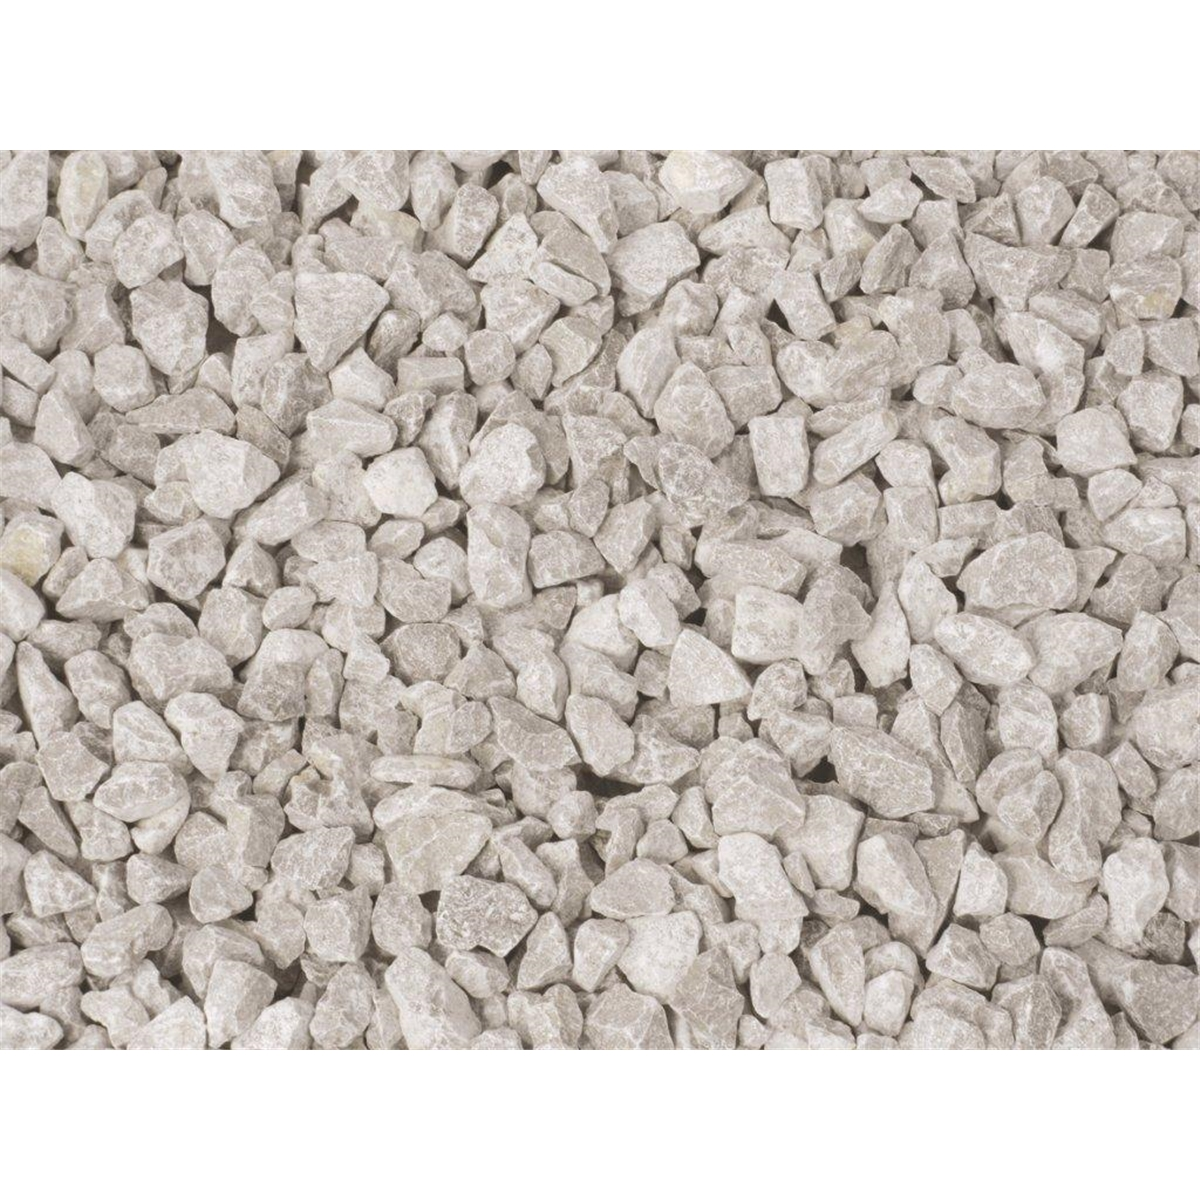 Bulk Bag 850kg York Grey Gravel